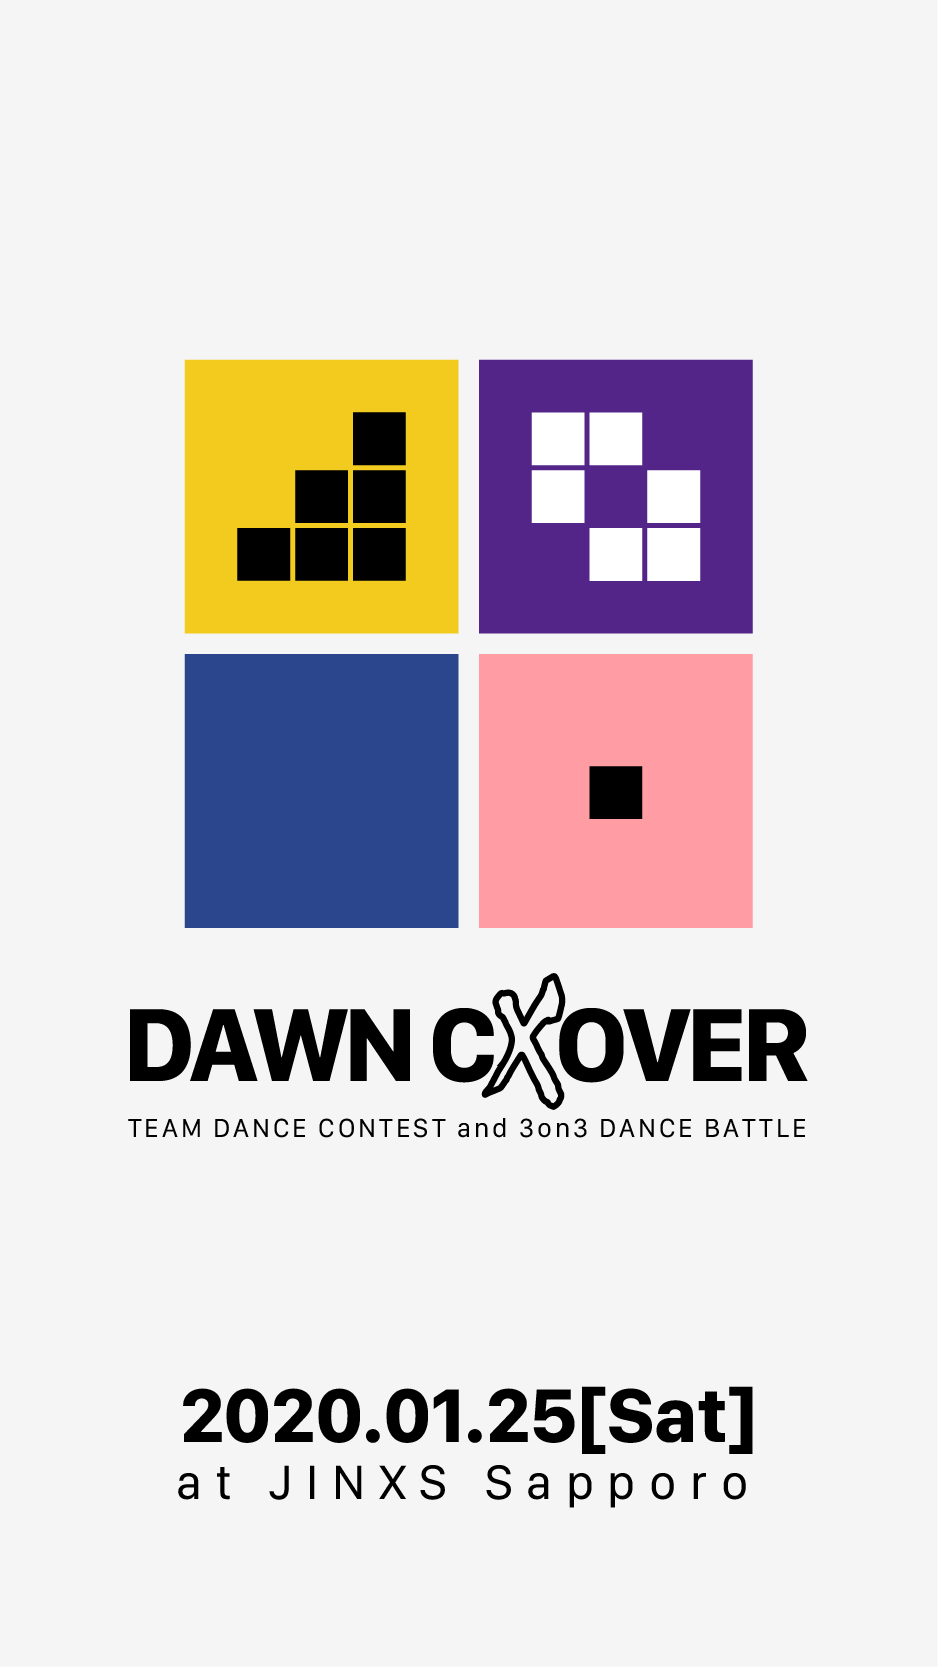 【1/16(Thu)エントリーリストUP】[Danxs.vol7]DAWN CLOVER